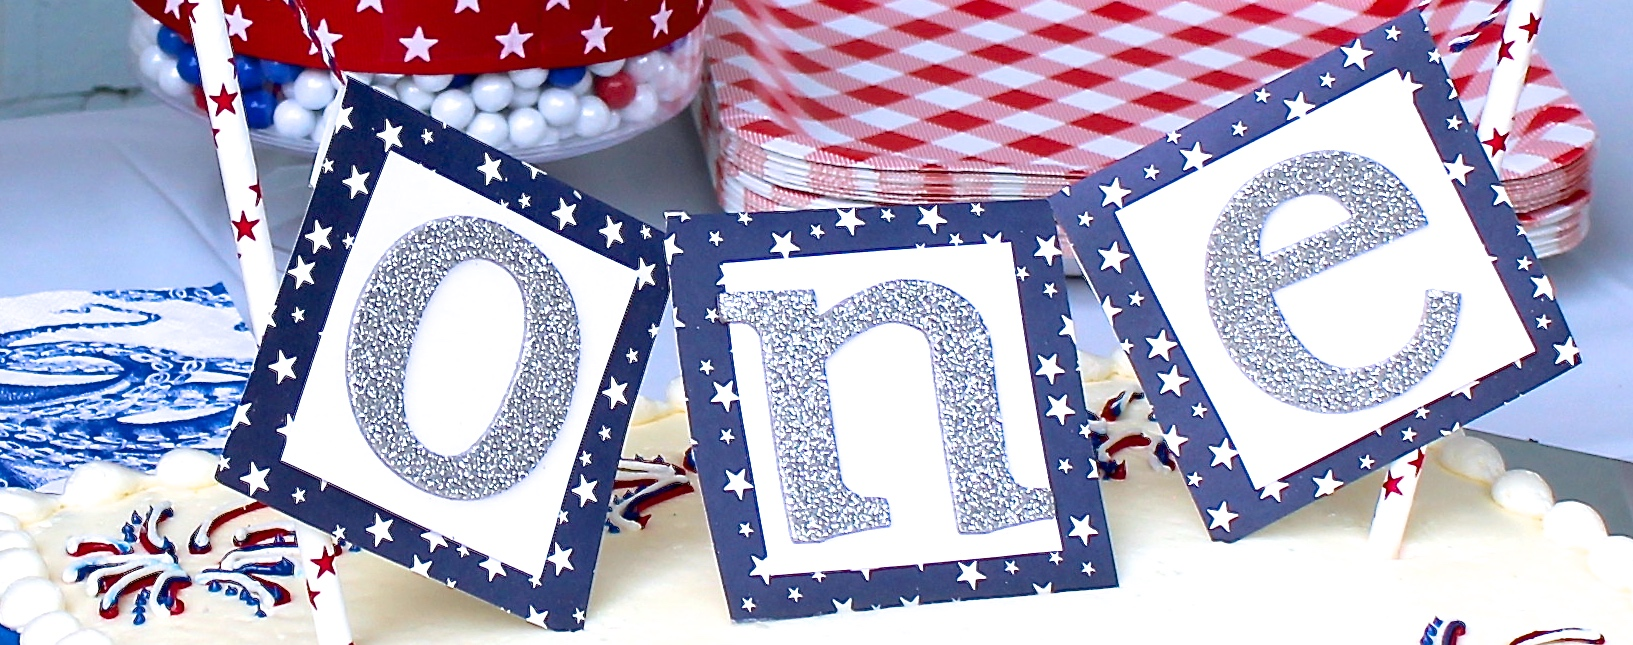 DIY Cake Topper for A Red, White & Blue First Birthday Party - Shining on Design